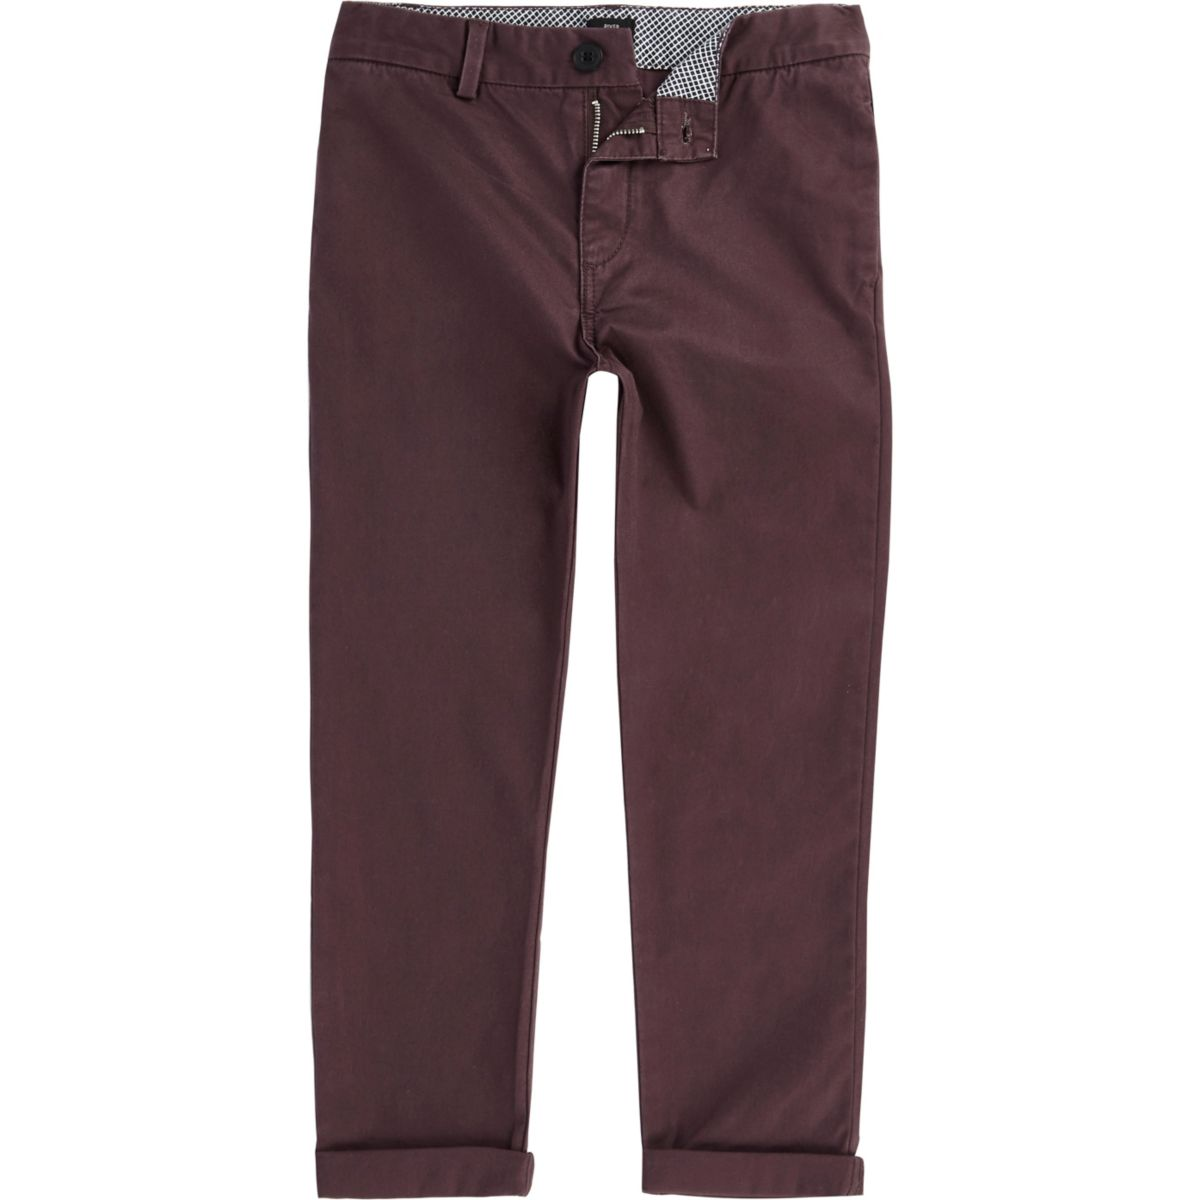 Boys burgundy chino pants